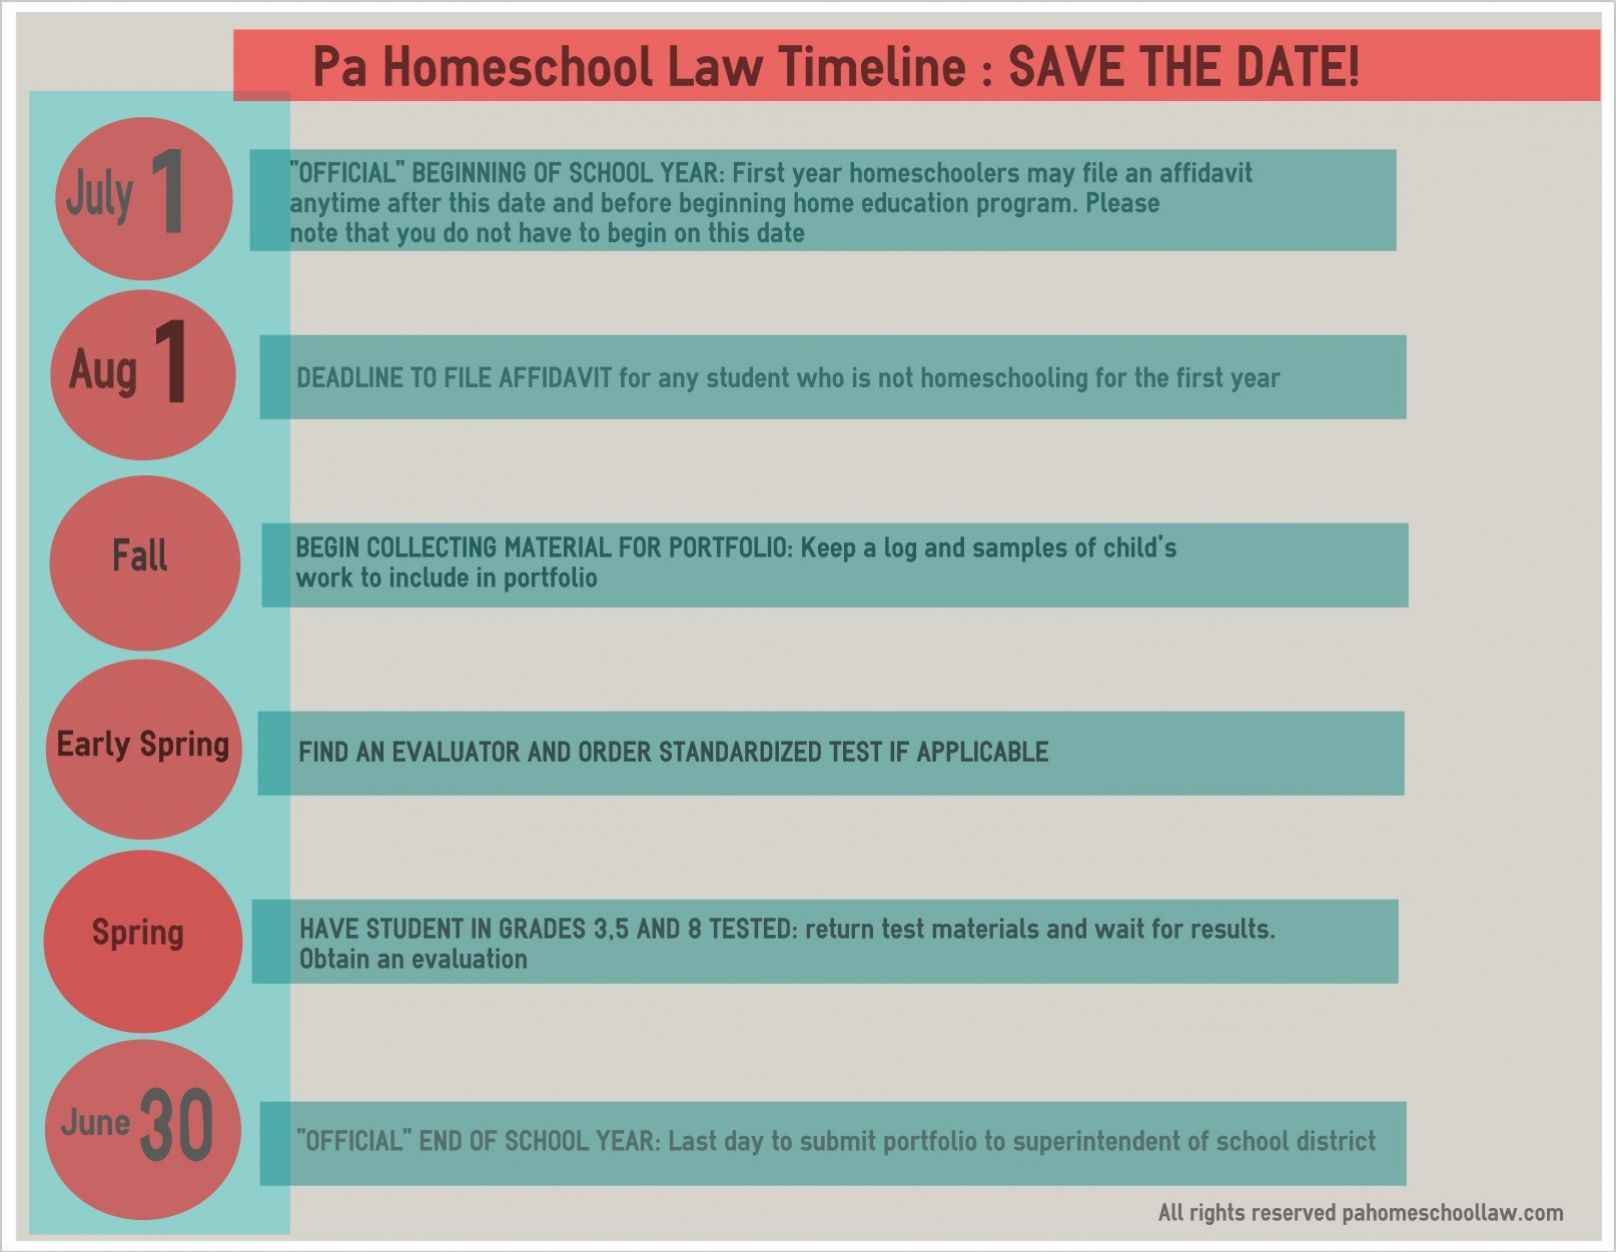 An Infographic To Help Pa Homeschool Parents Remember Important